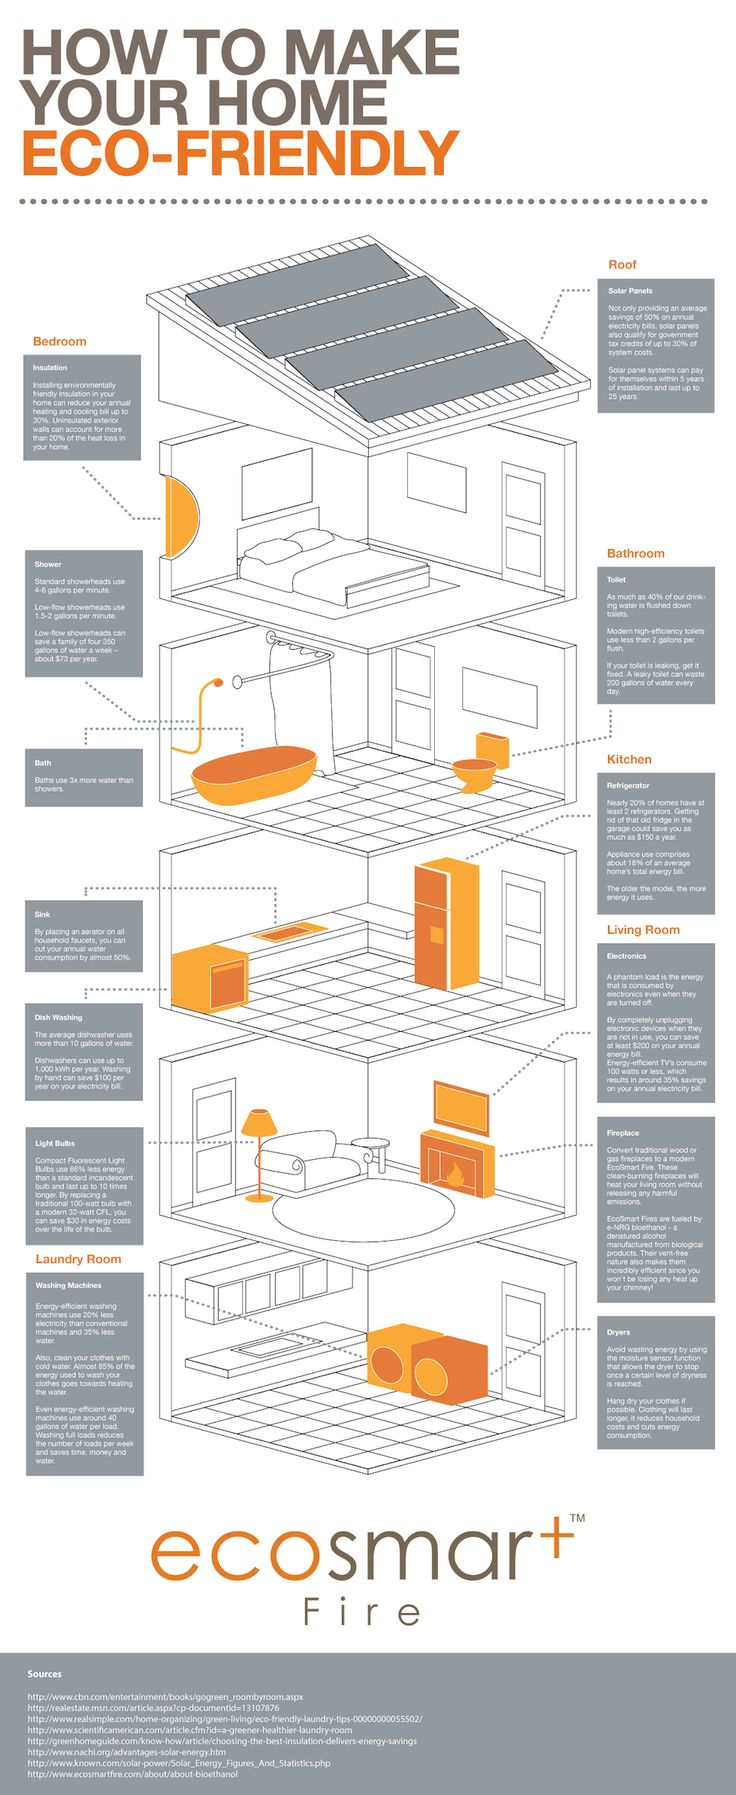 eco friendly home infographic